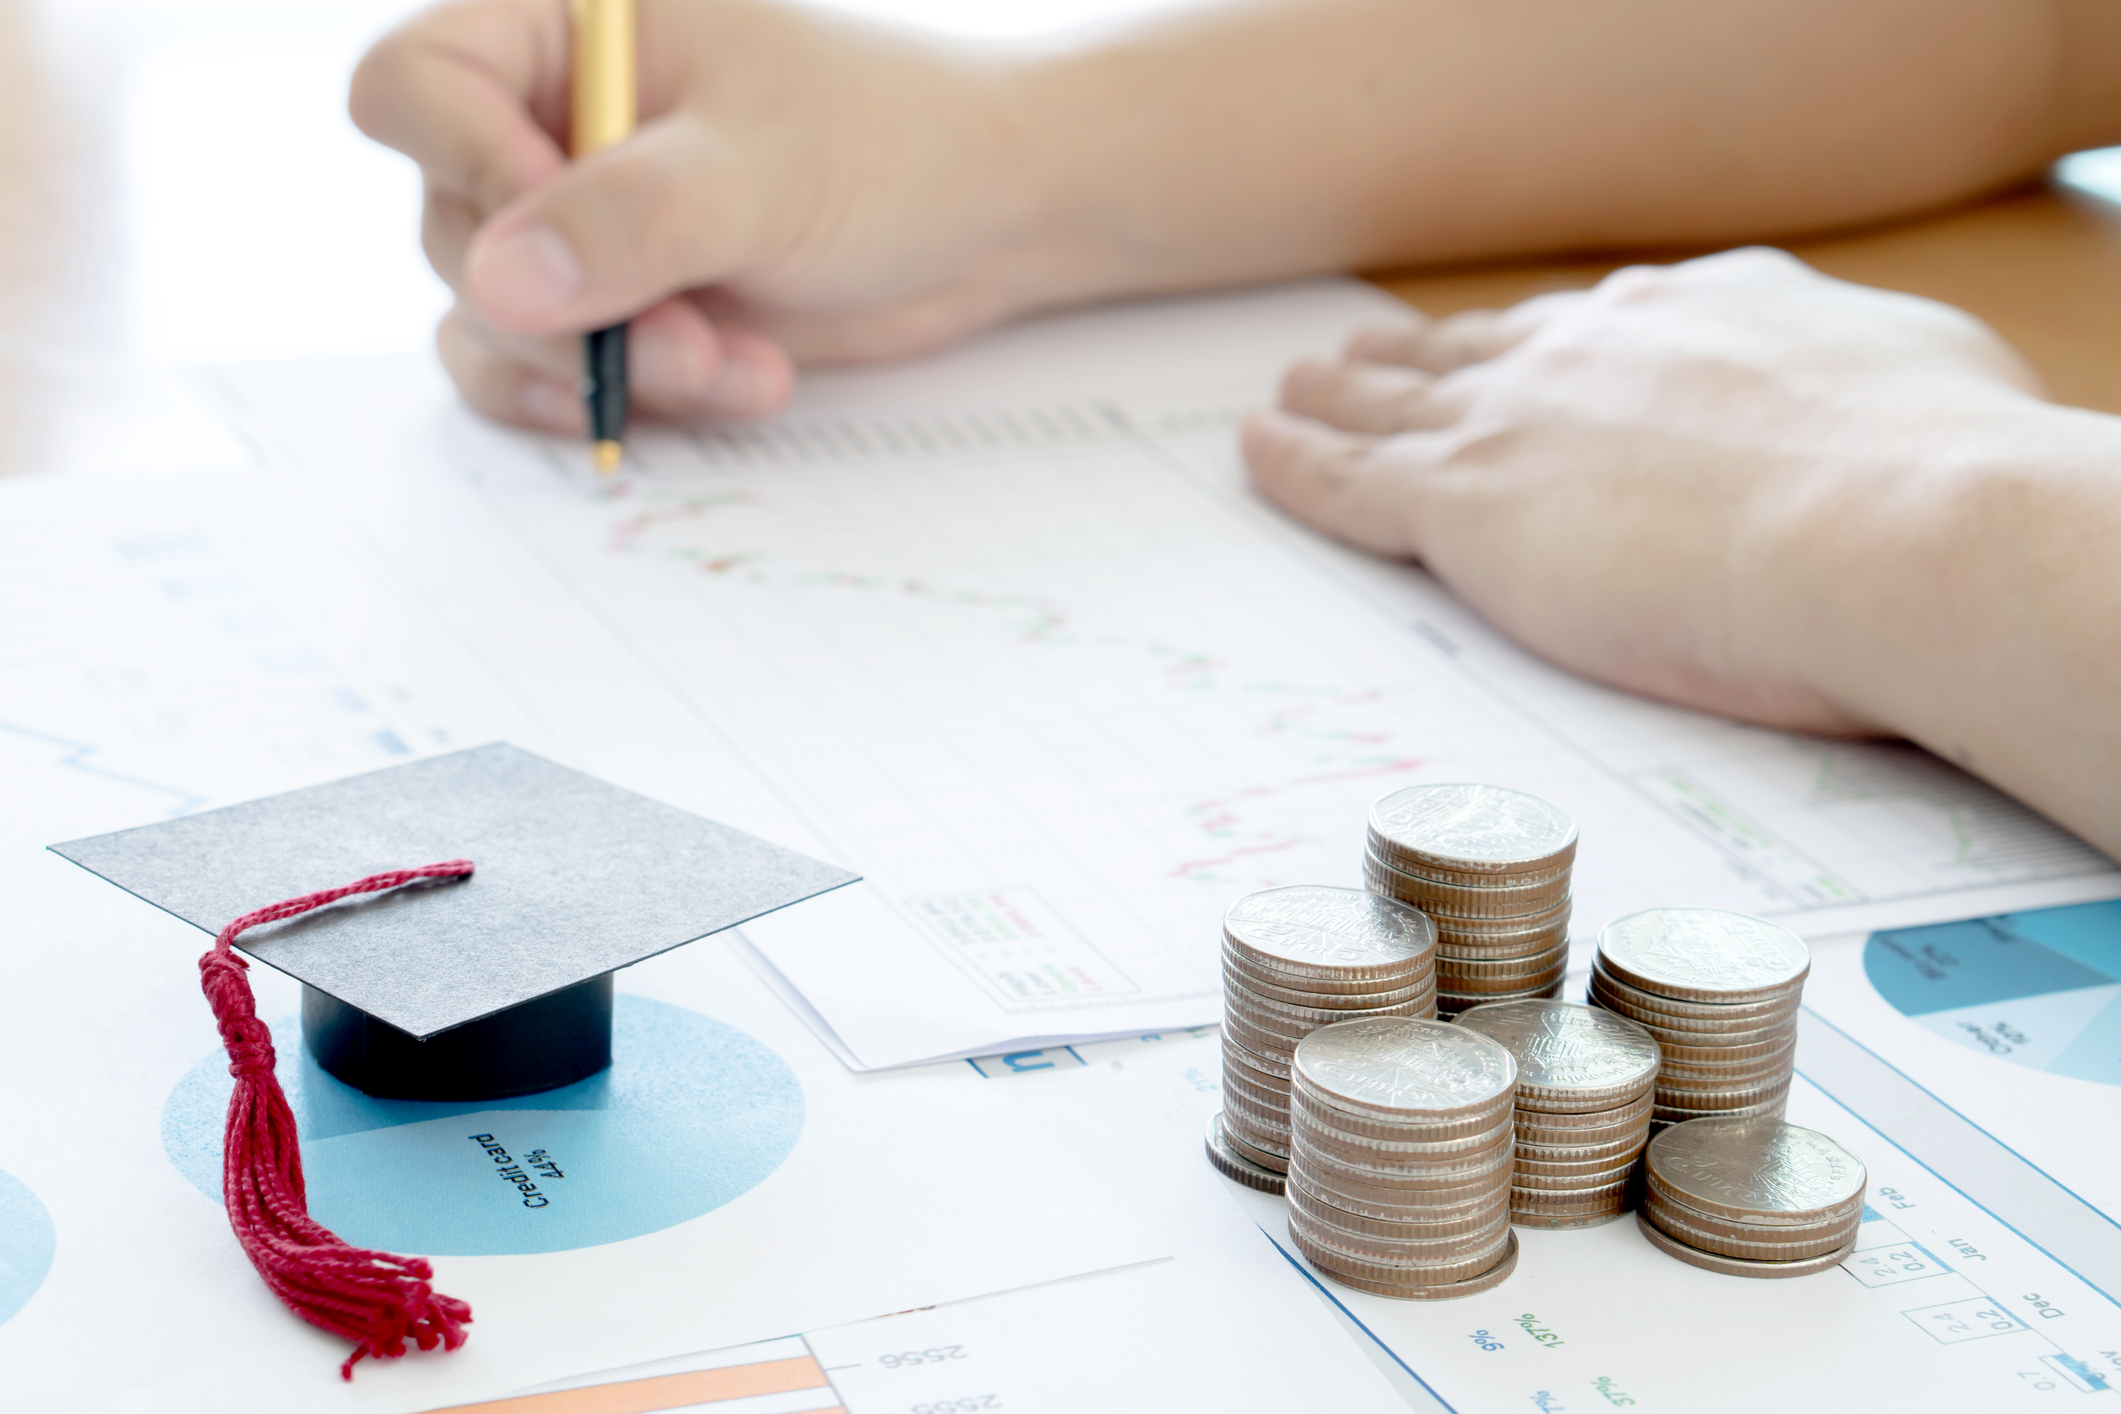 person writing on a piece of paper with a small graduation cap and stacks of coins in the foreground